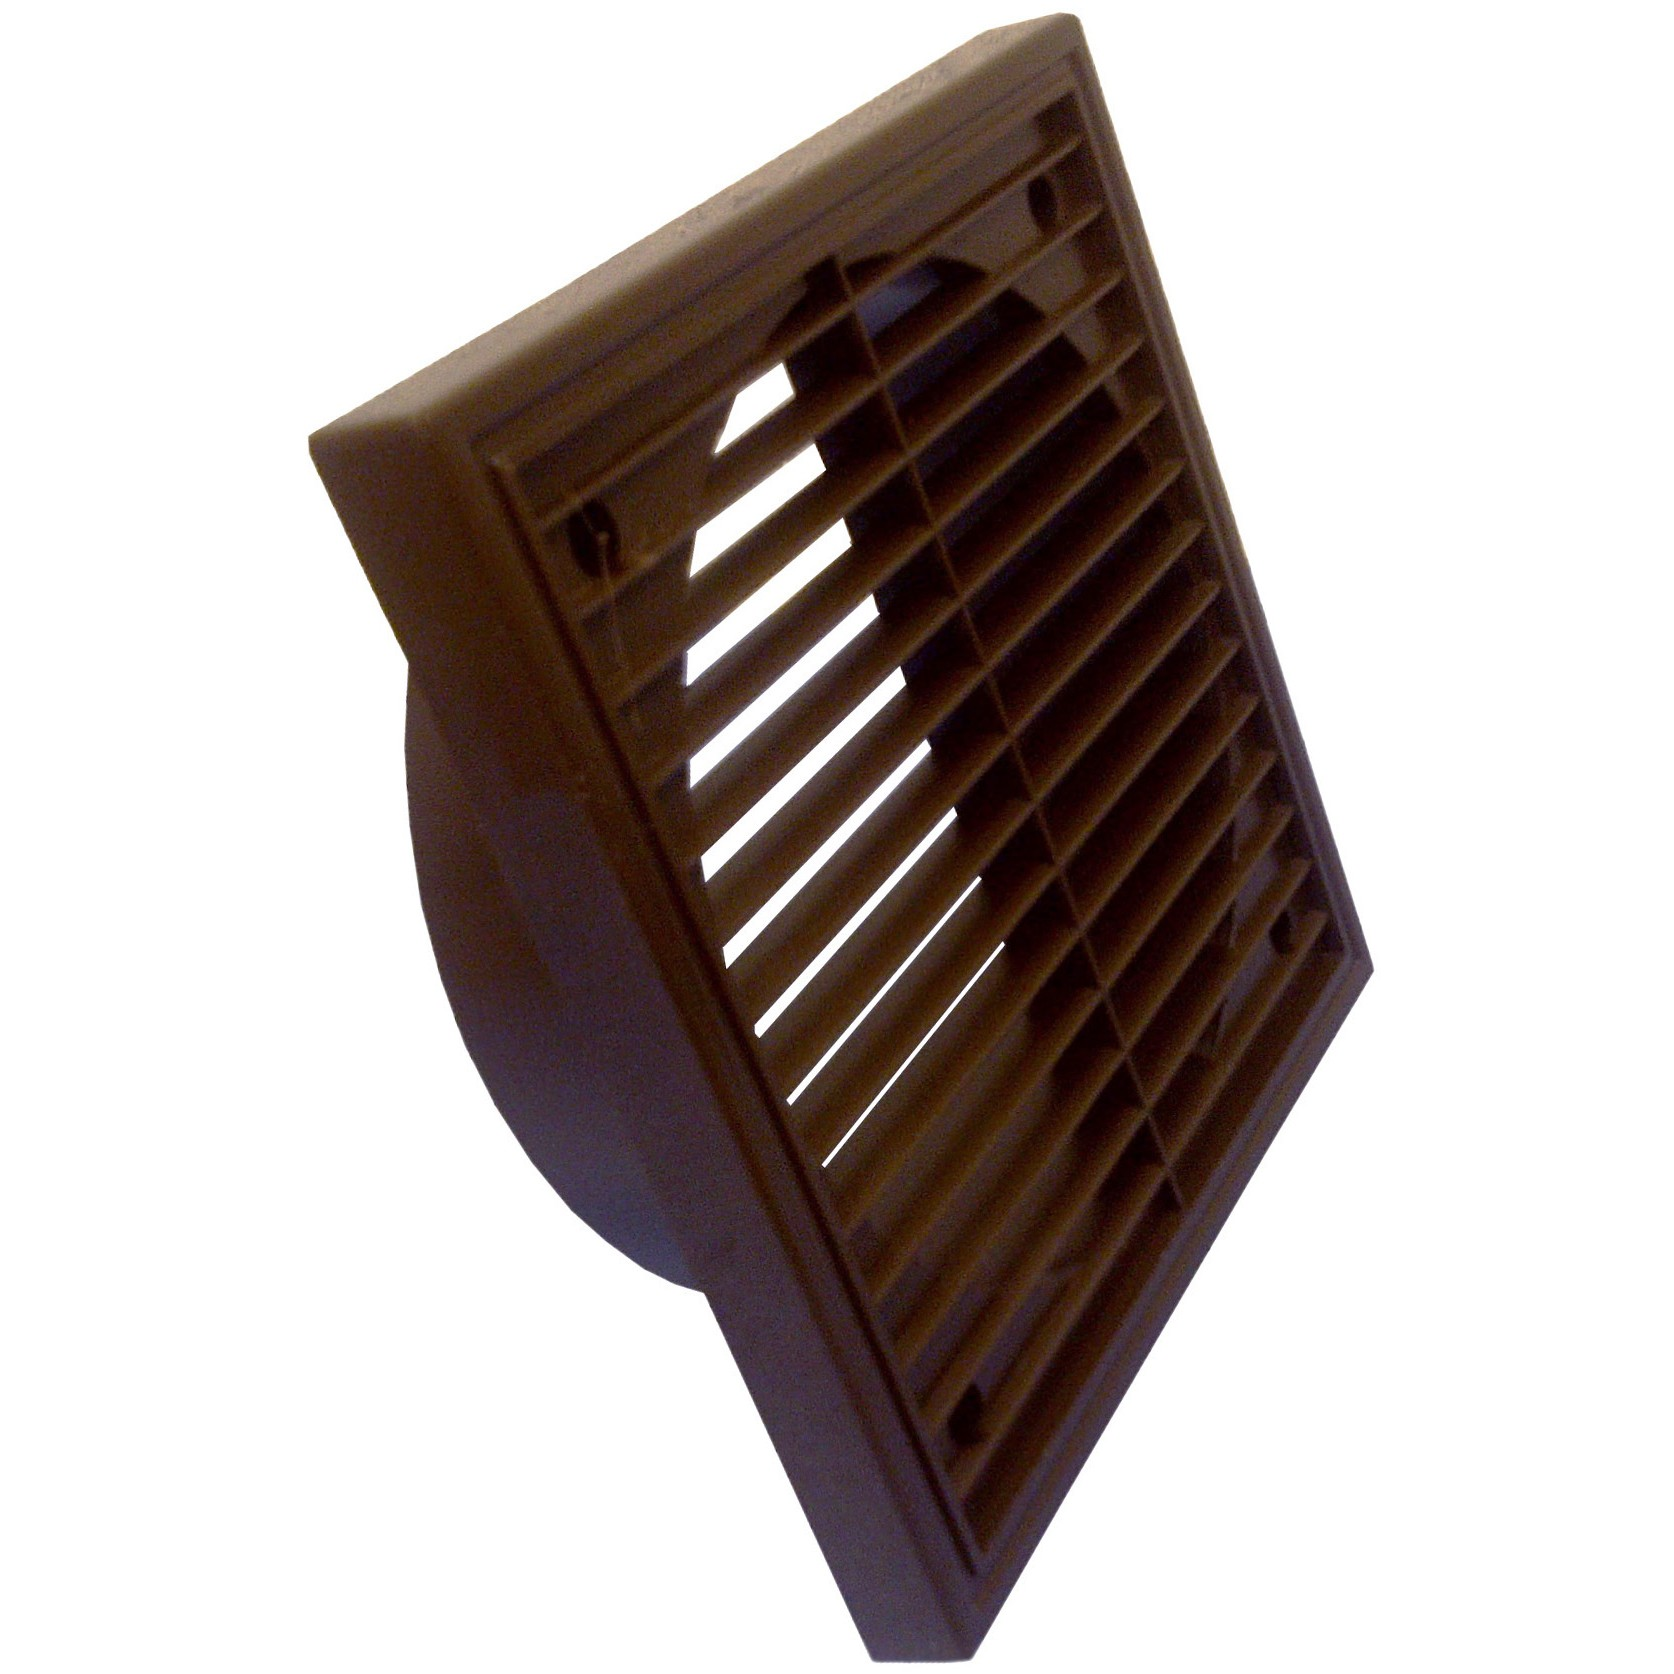 Manrose Round Ducting Pipe Fixed Grille Vent Outlet - Brown, 100mm